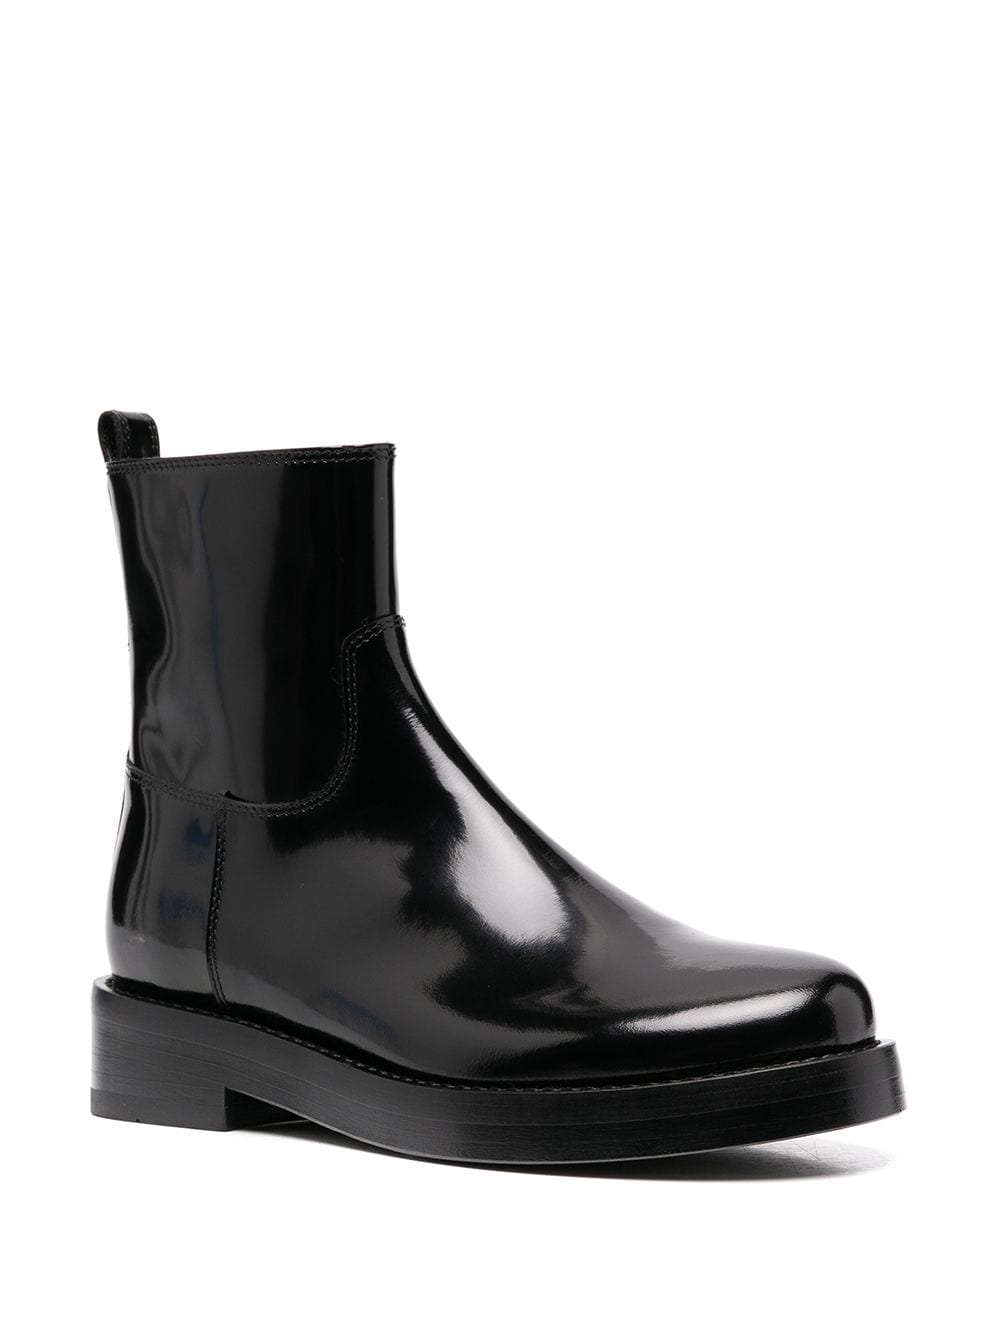 ANN DEMEULEMEESTER WOMEN ANKLE RIDING BOOTS PATENT LEATHER